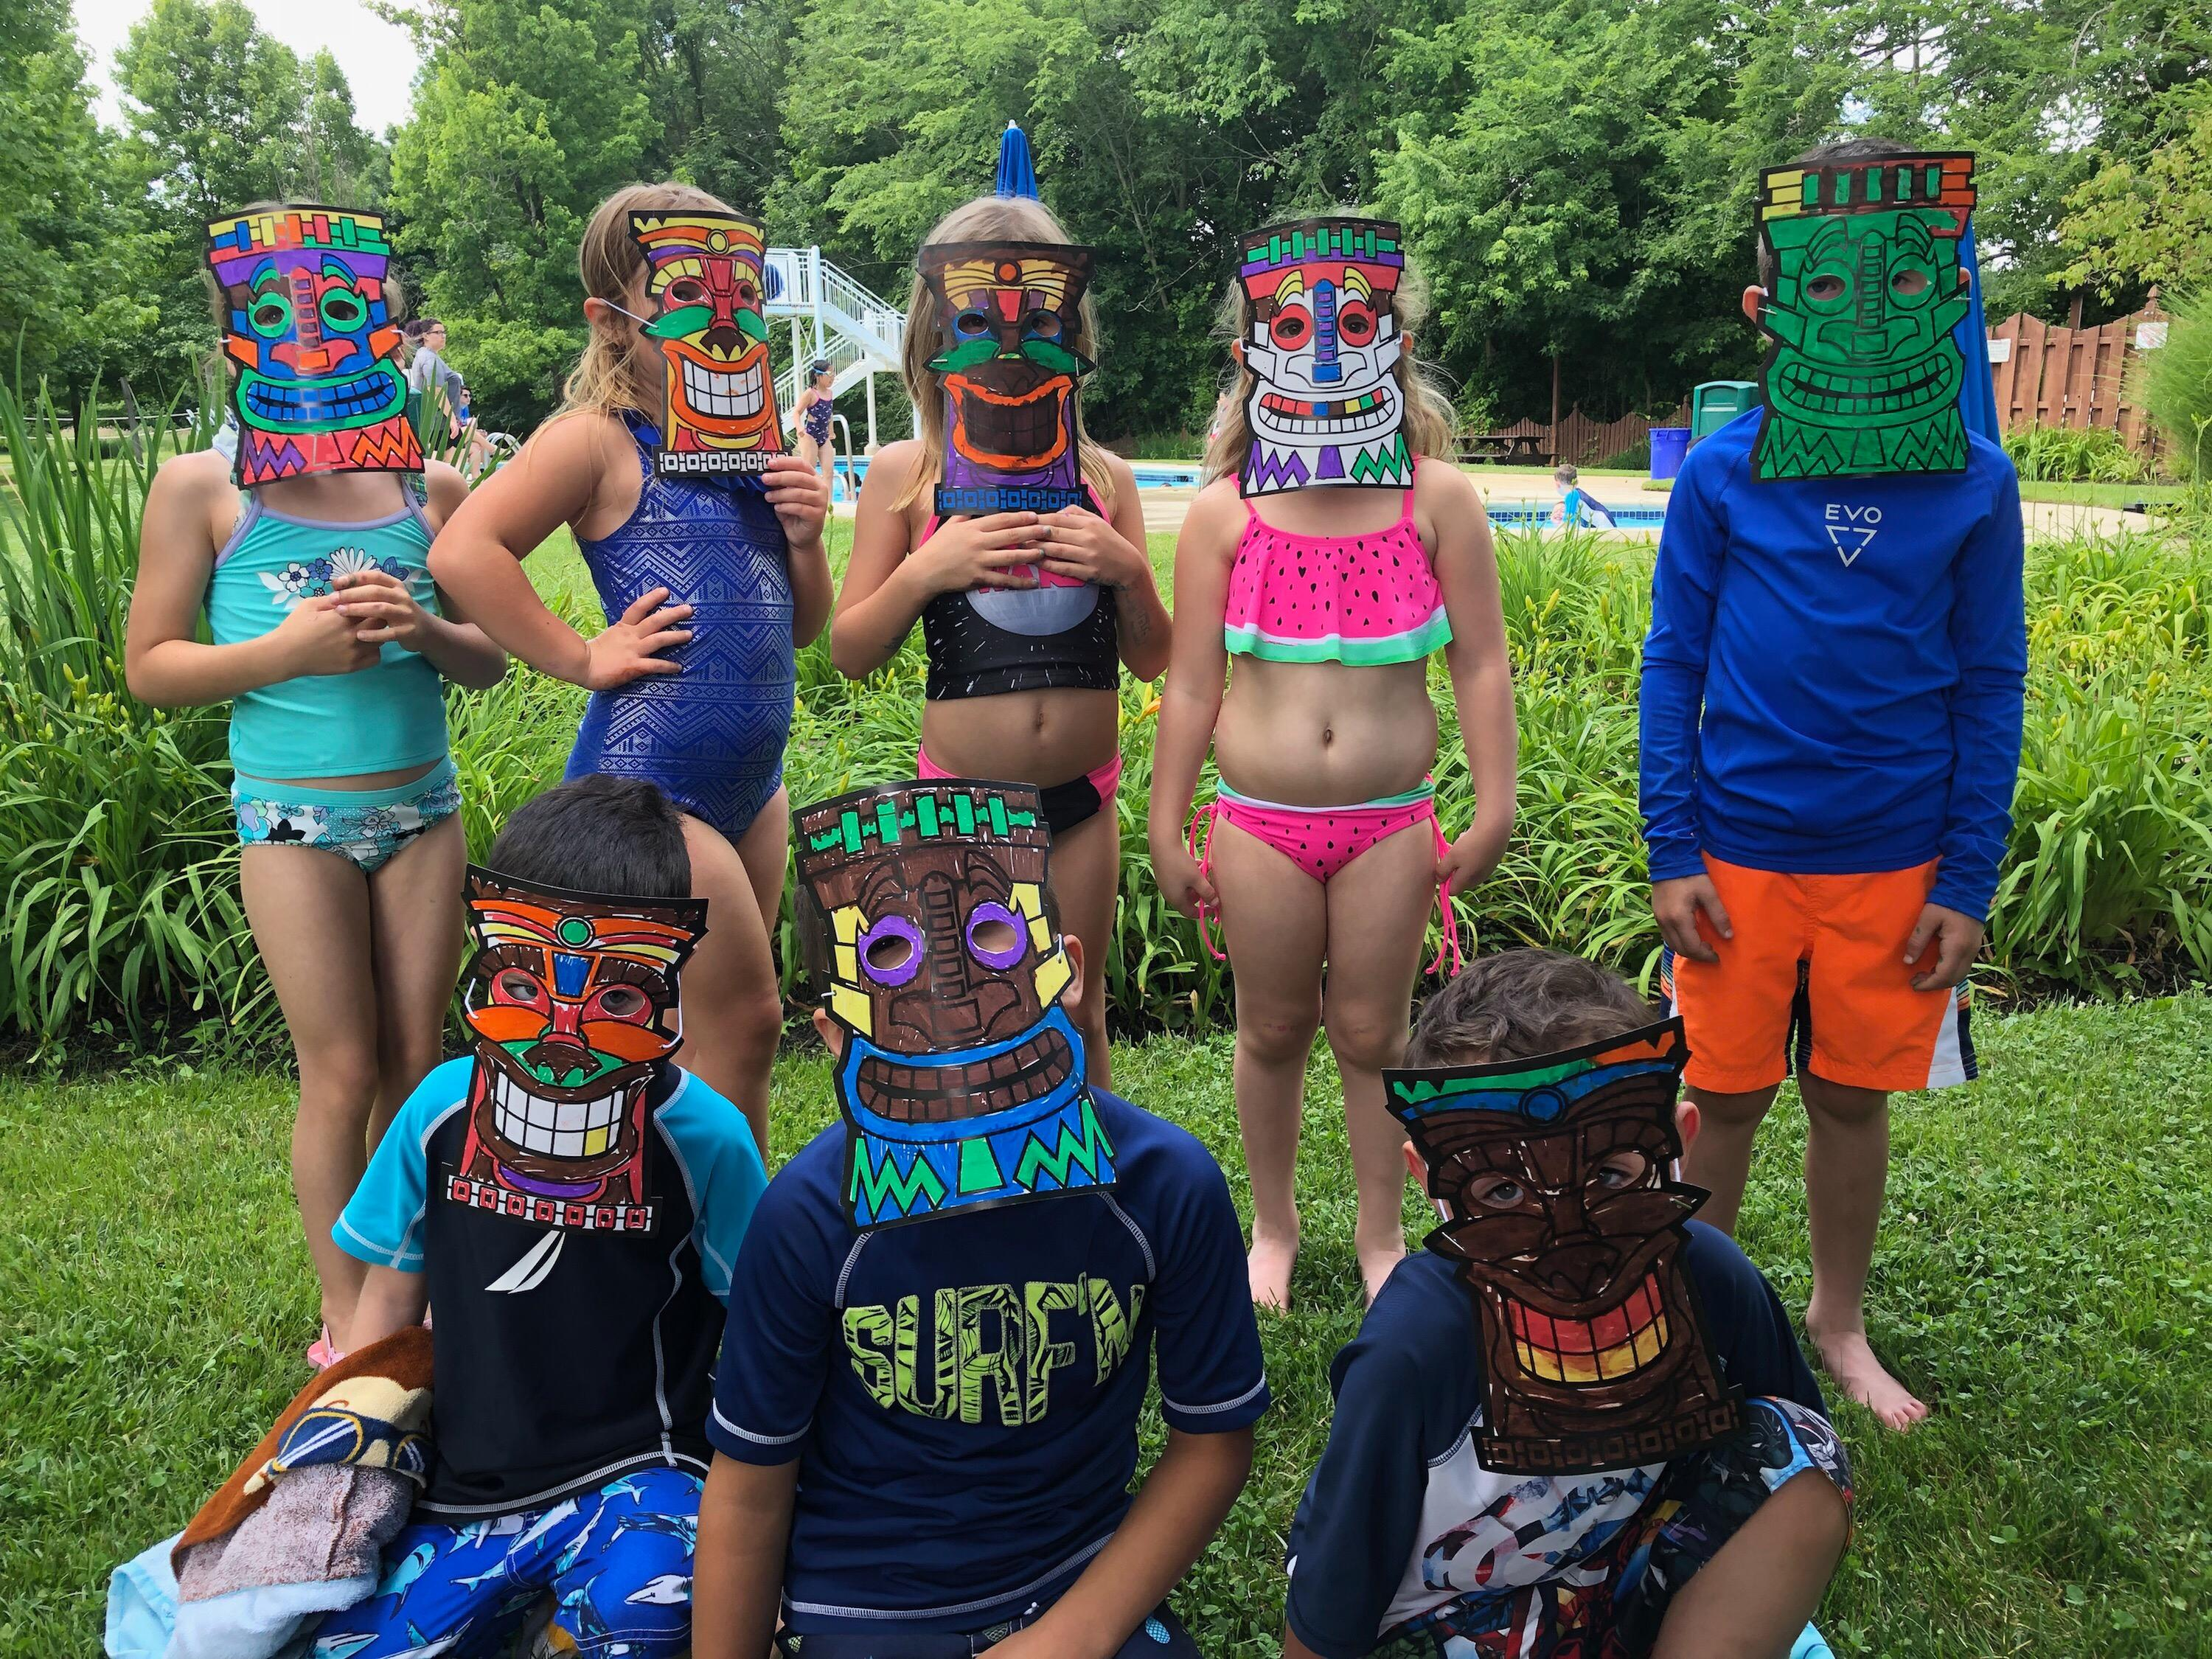 Chartwell's Happy Day Camp Marlton image 45